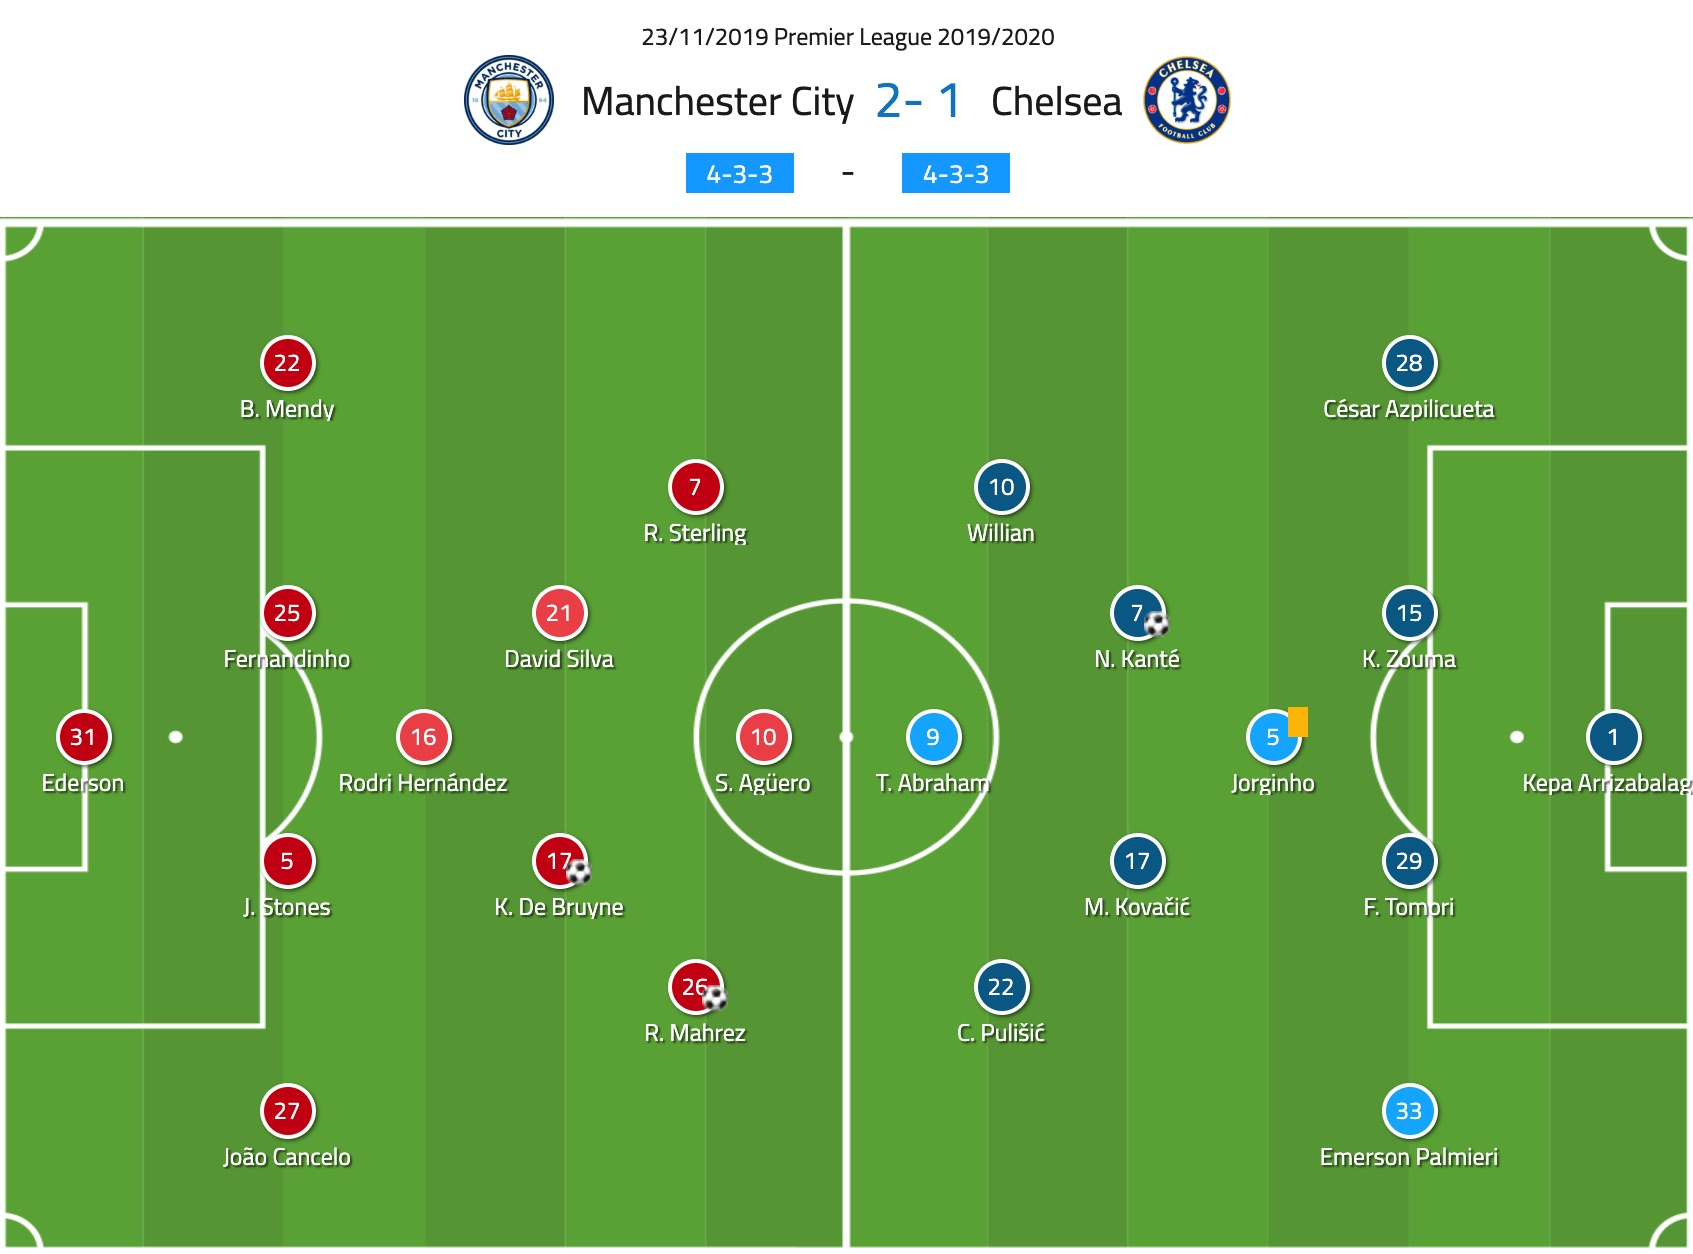 Premier League 2019/20: Man City vs Chelsea - tactical analysis tactics